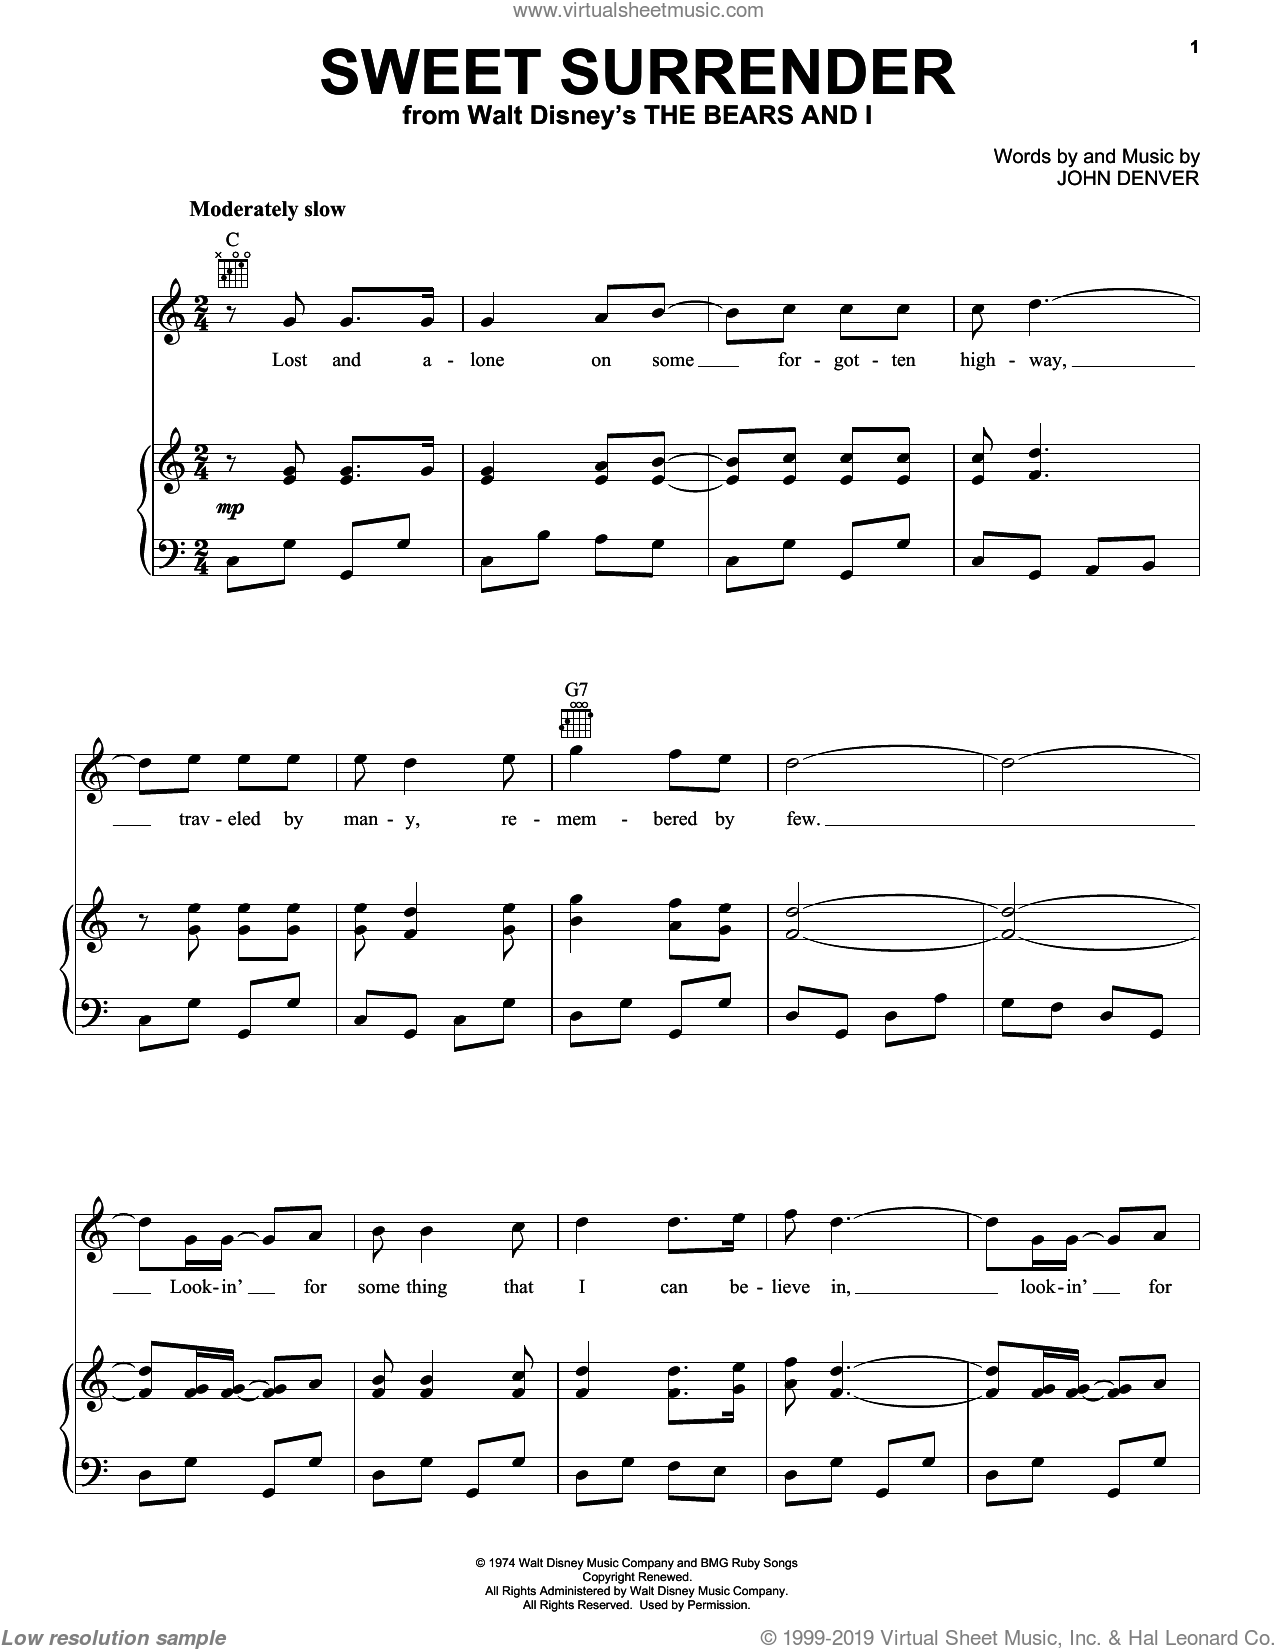 Sweet Surrender sheet music for voice, piano or guitar by John Denver, intermediate skill level